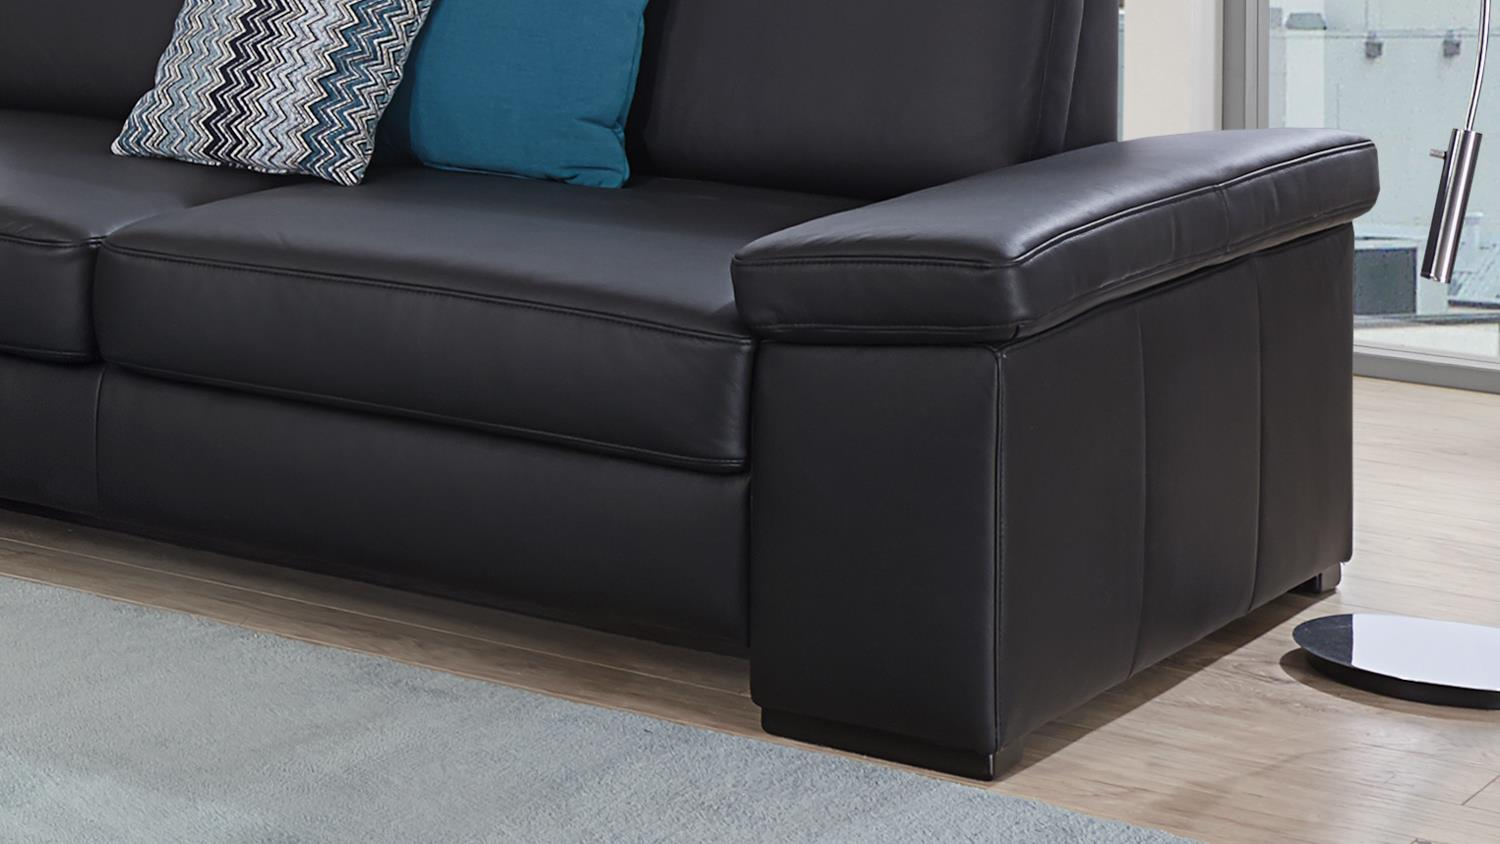 sofa puzzle 2 sitzer in lederlook schwarz mit federkern breite 208 cm. Black Bedroom Furniture Sets. Home Design Ideas